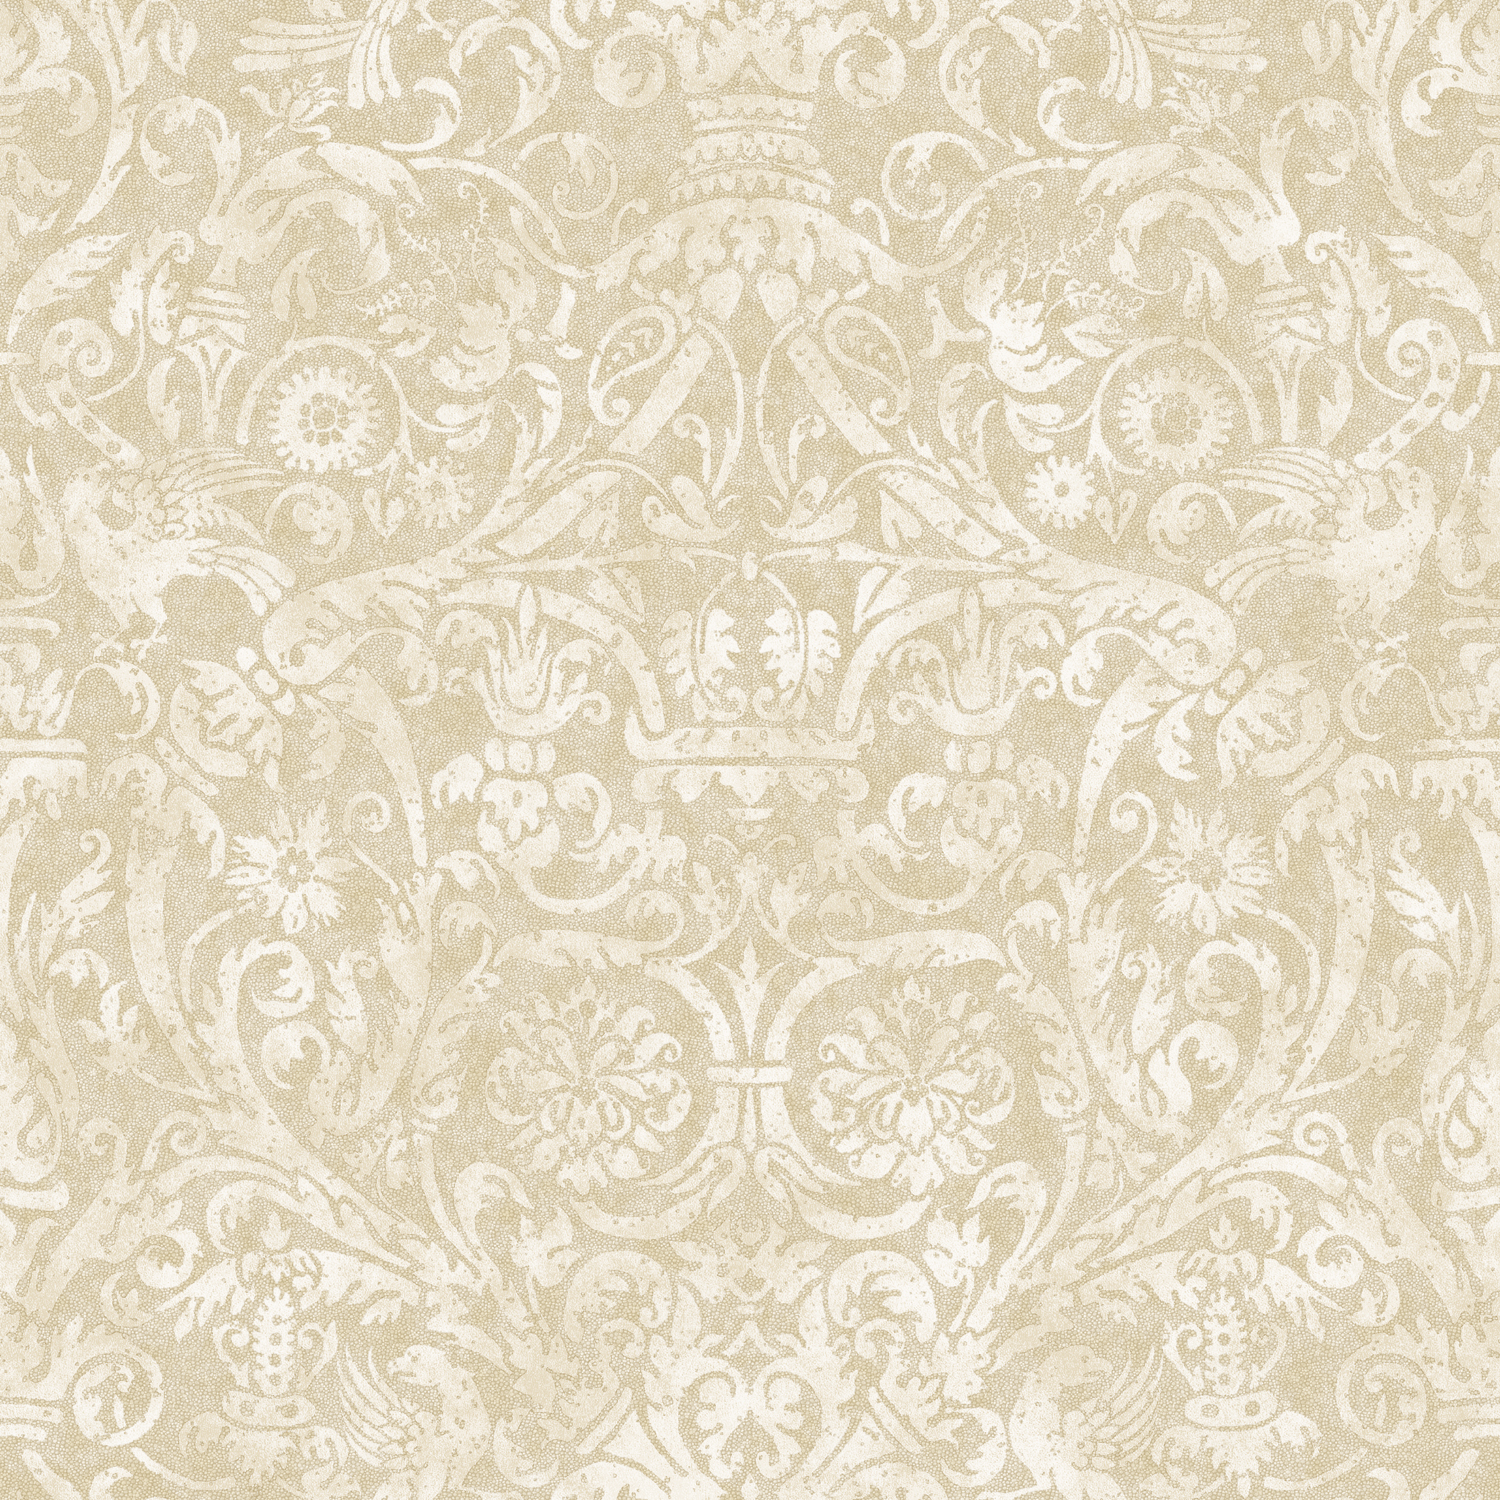 Picture of Bali Beige Damask Wallpaper